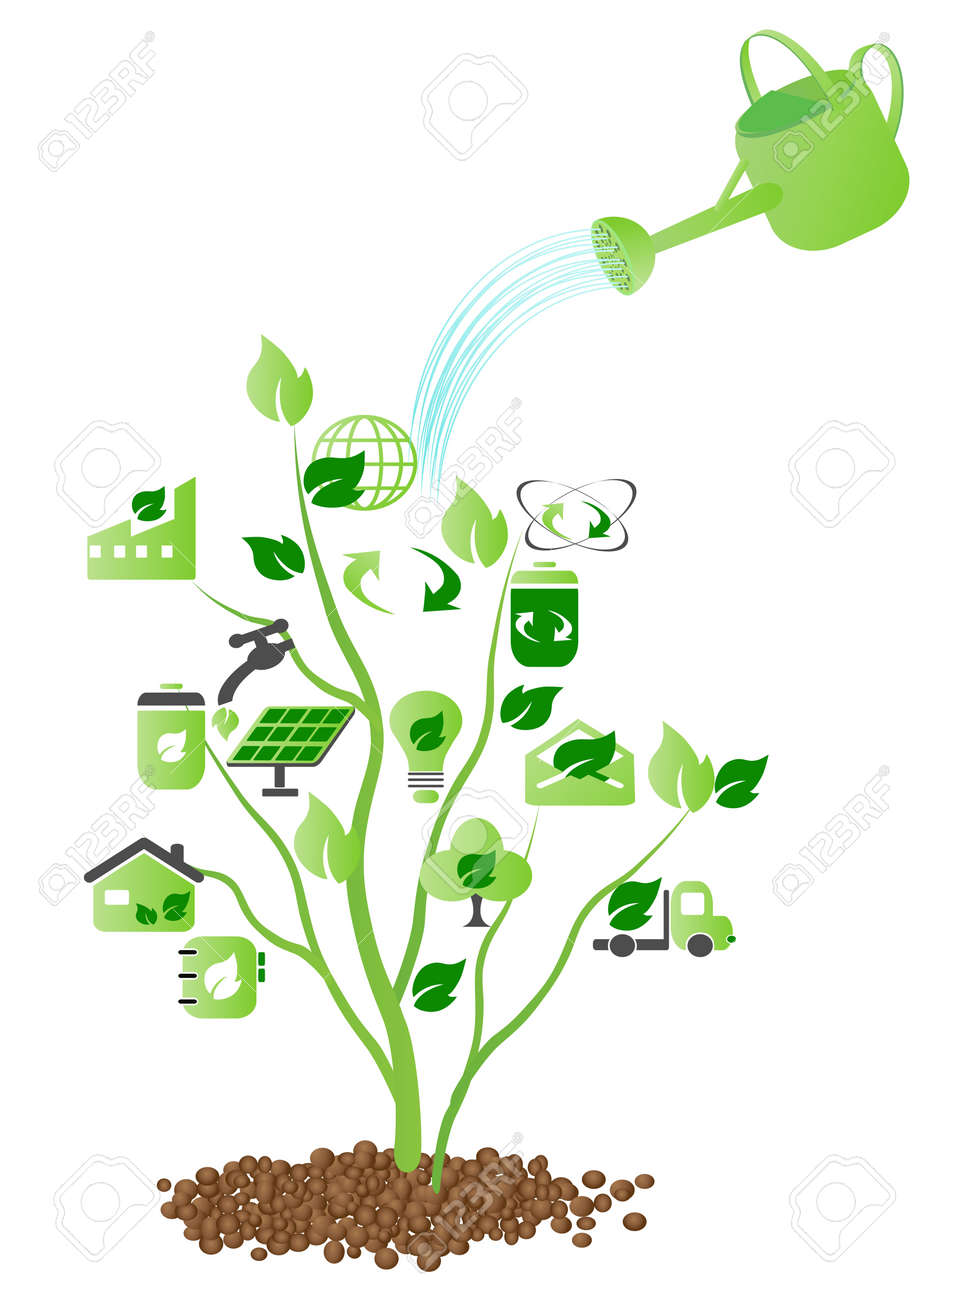 watering over some green icons growing on the tree Stock Vector - 7919600